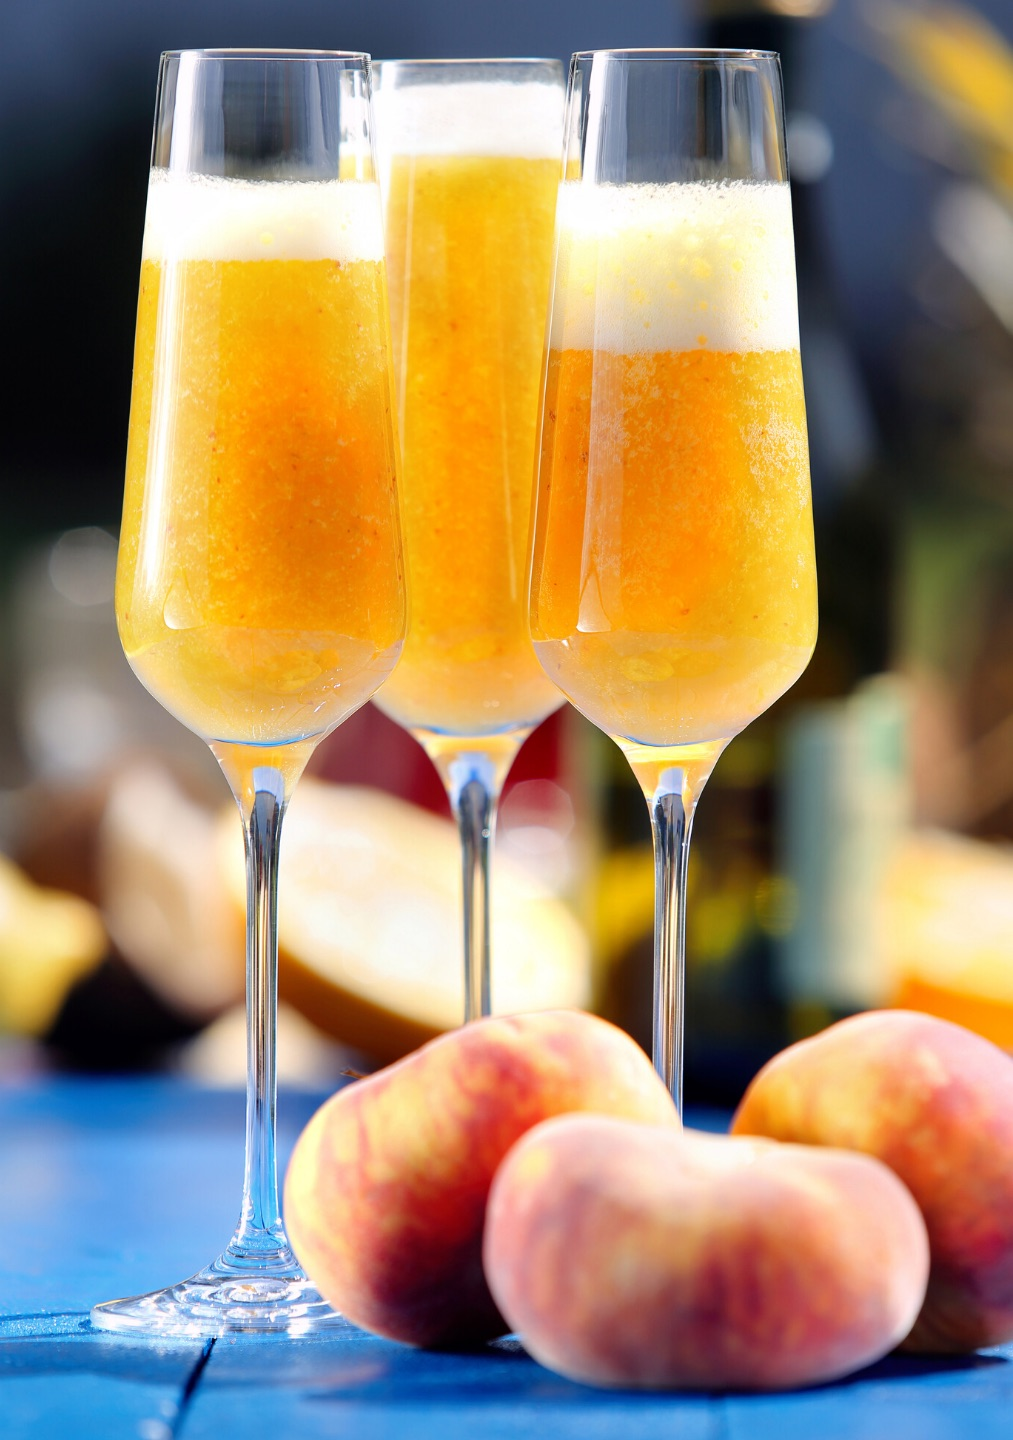 A Bellini cocktail made with Prosecco and peach purée